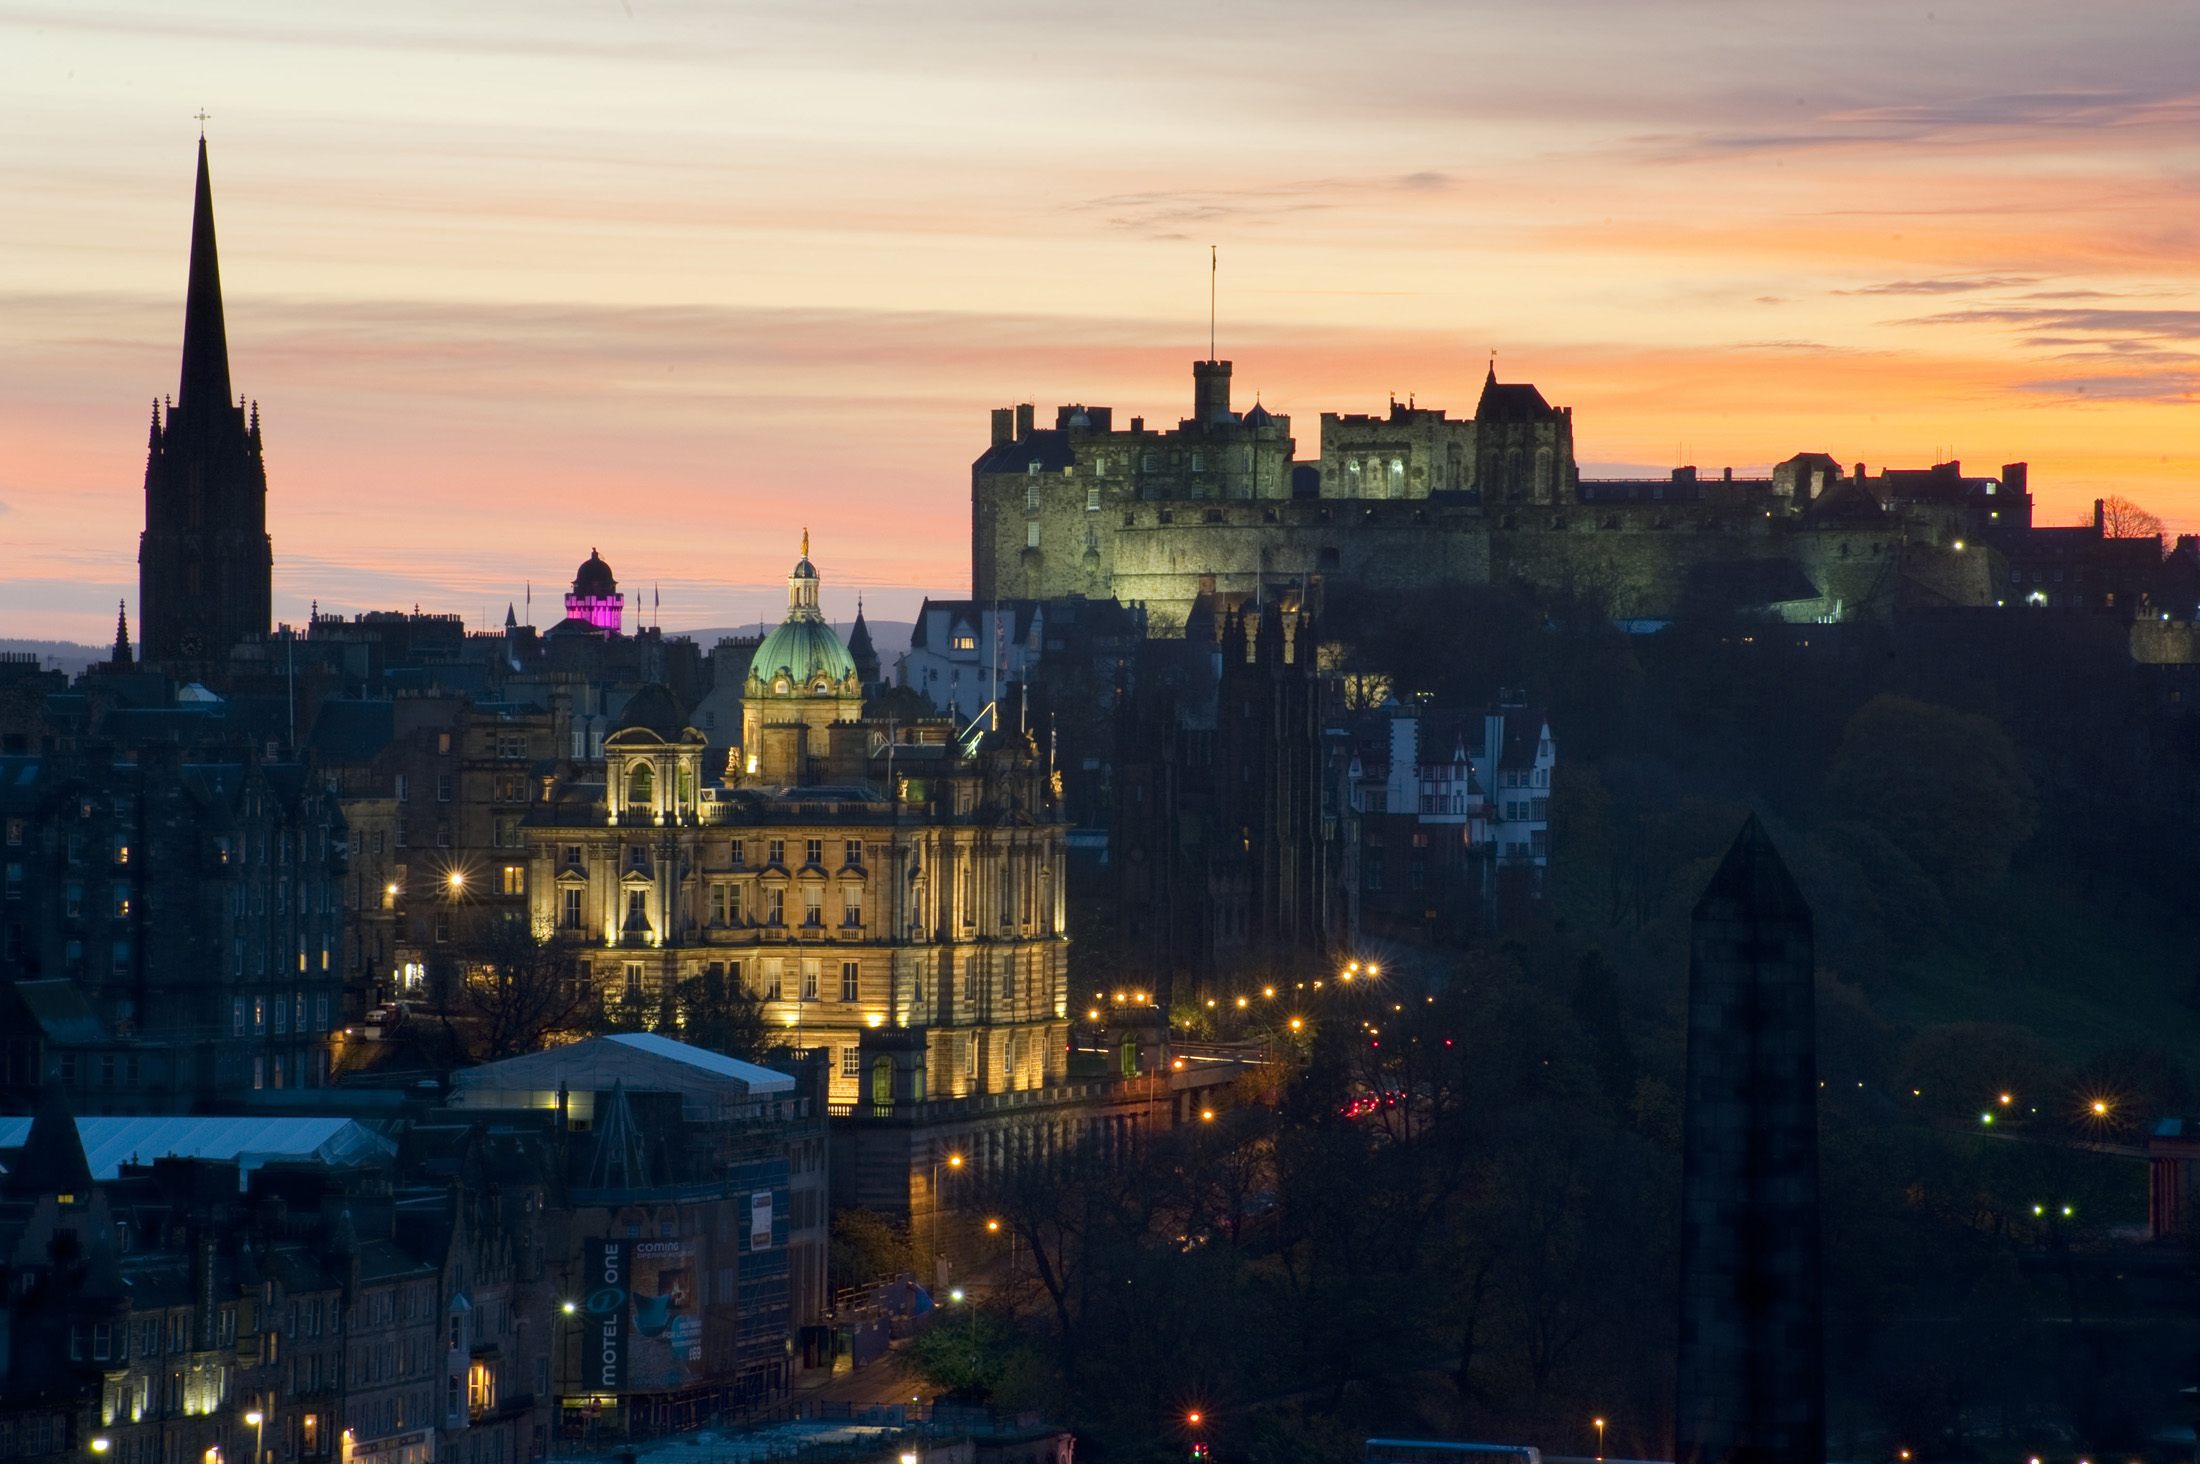 Floodlit at night, edinburgh castle, the camera obscura (pink) and other landmarks in the so called Athens of the north